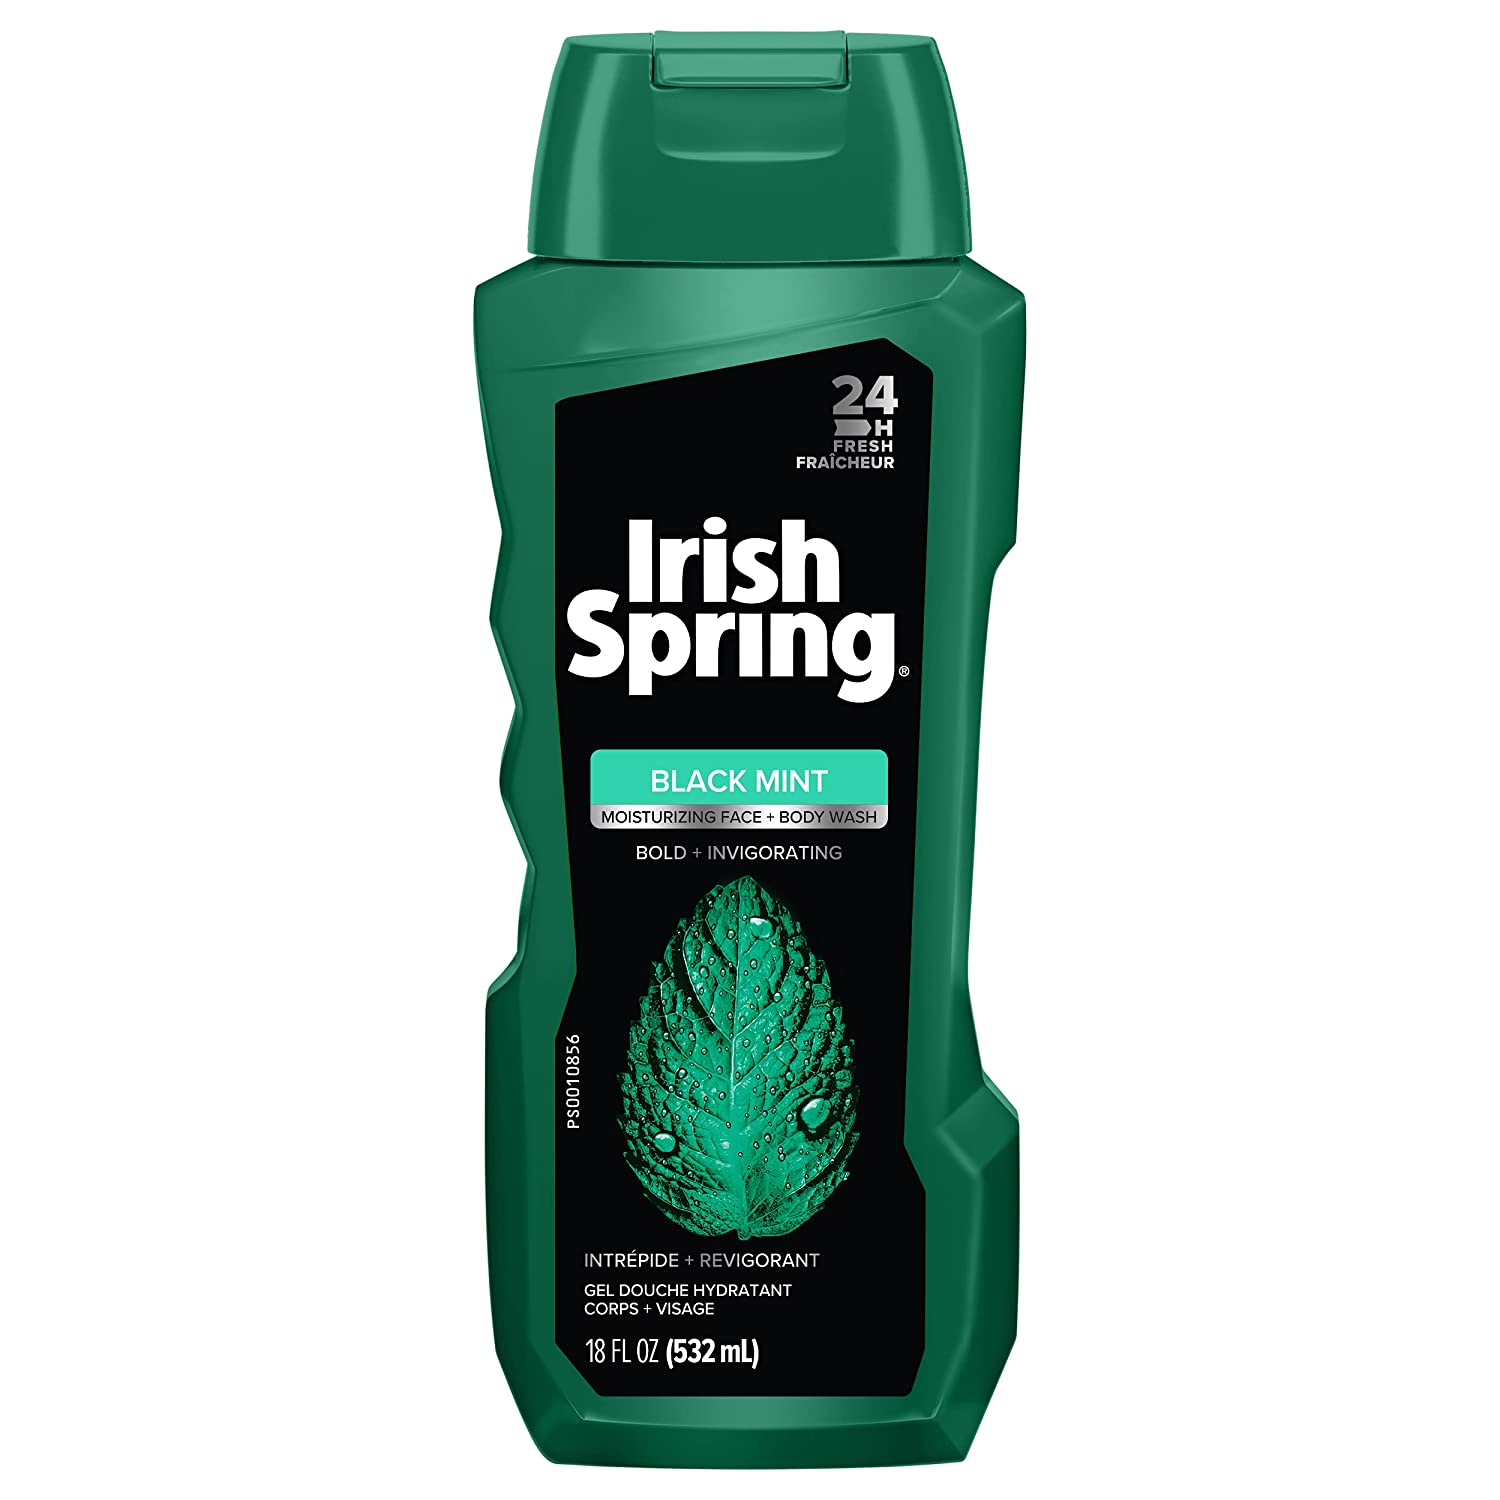 Irish Spring Body Wash 18 Black Mint lowest price Ounce Complete Free Shipping